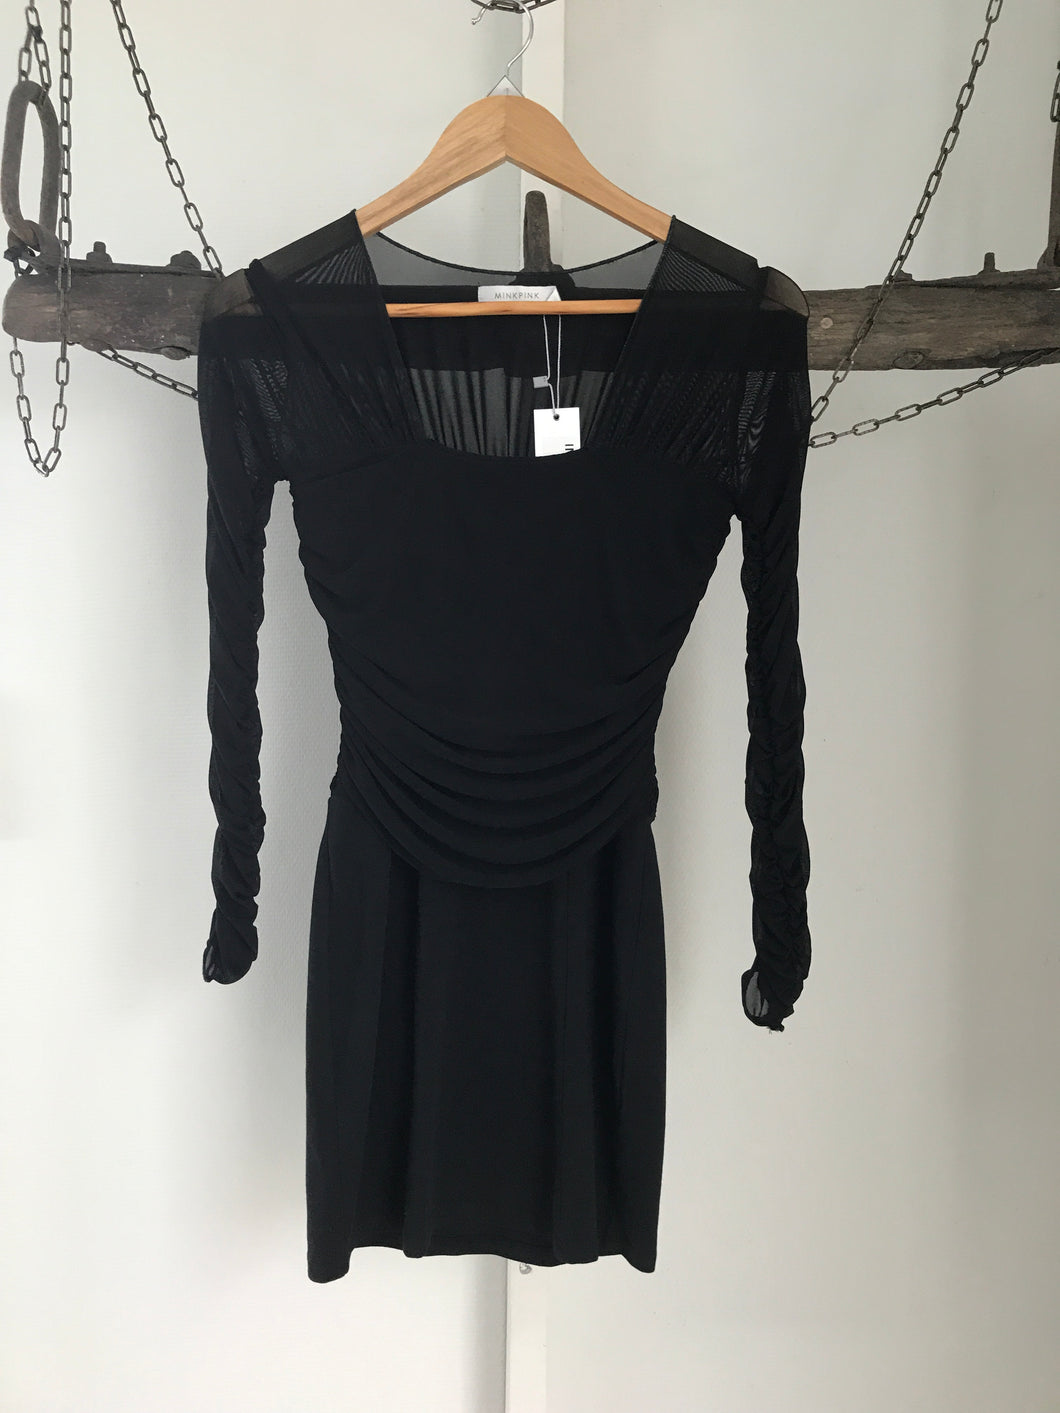 Mink Pink Black Long Sheer Sleeve Dress Size 8 NWT